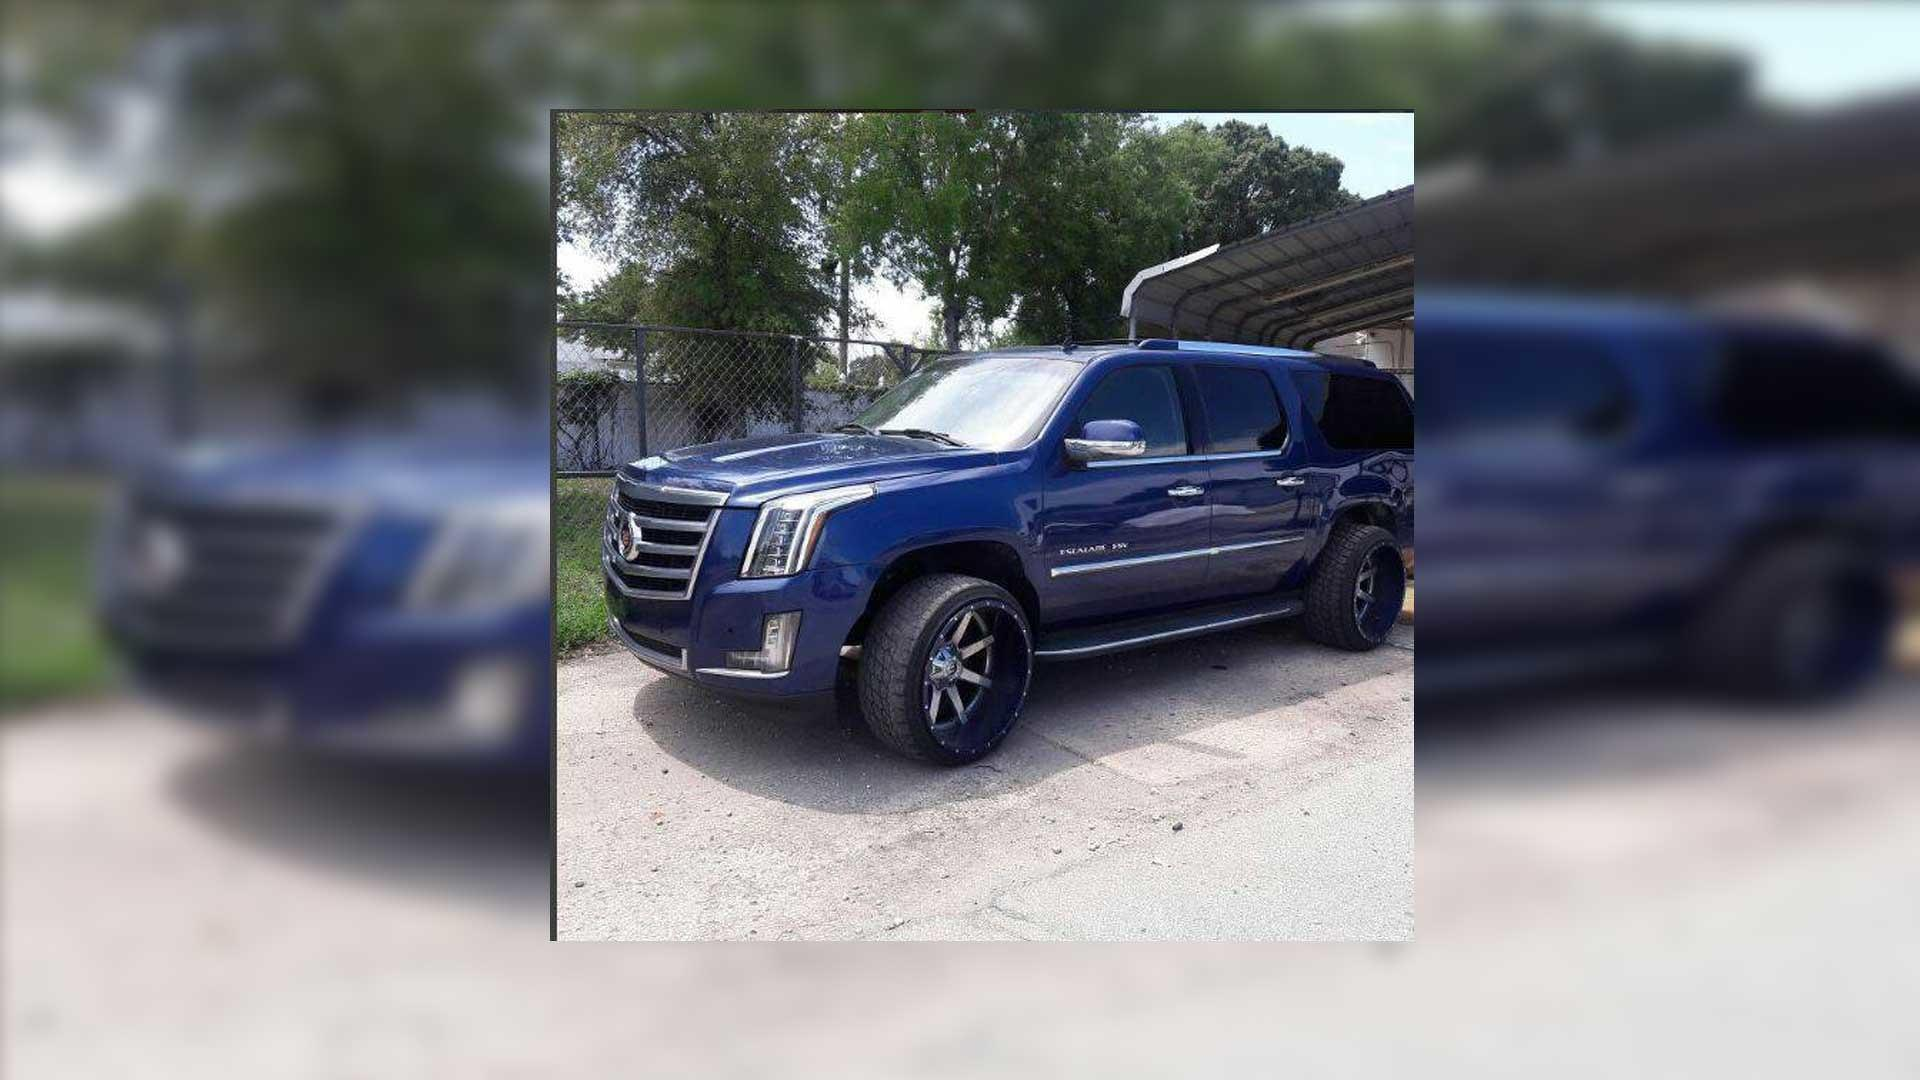 esv awd photo for review escalade s reviews driver and cadillac first platinum drive quick spin sale car original